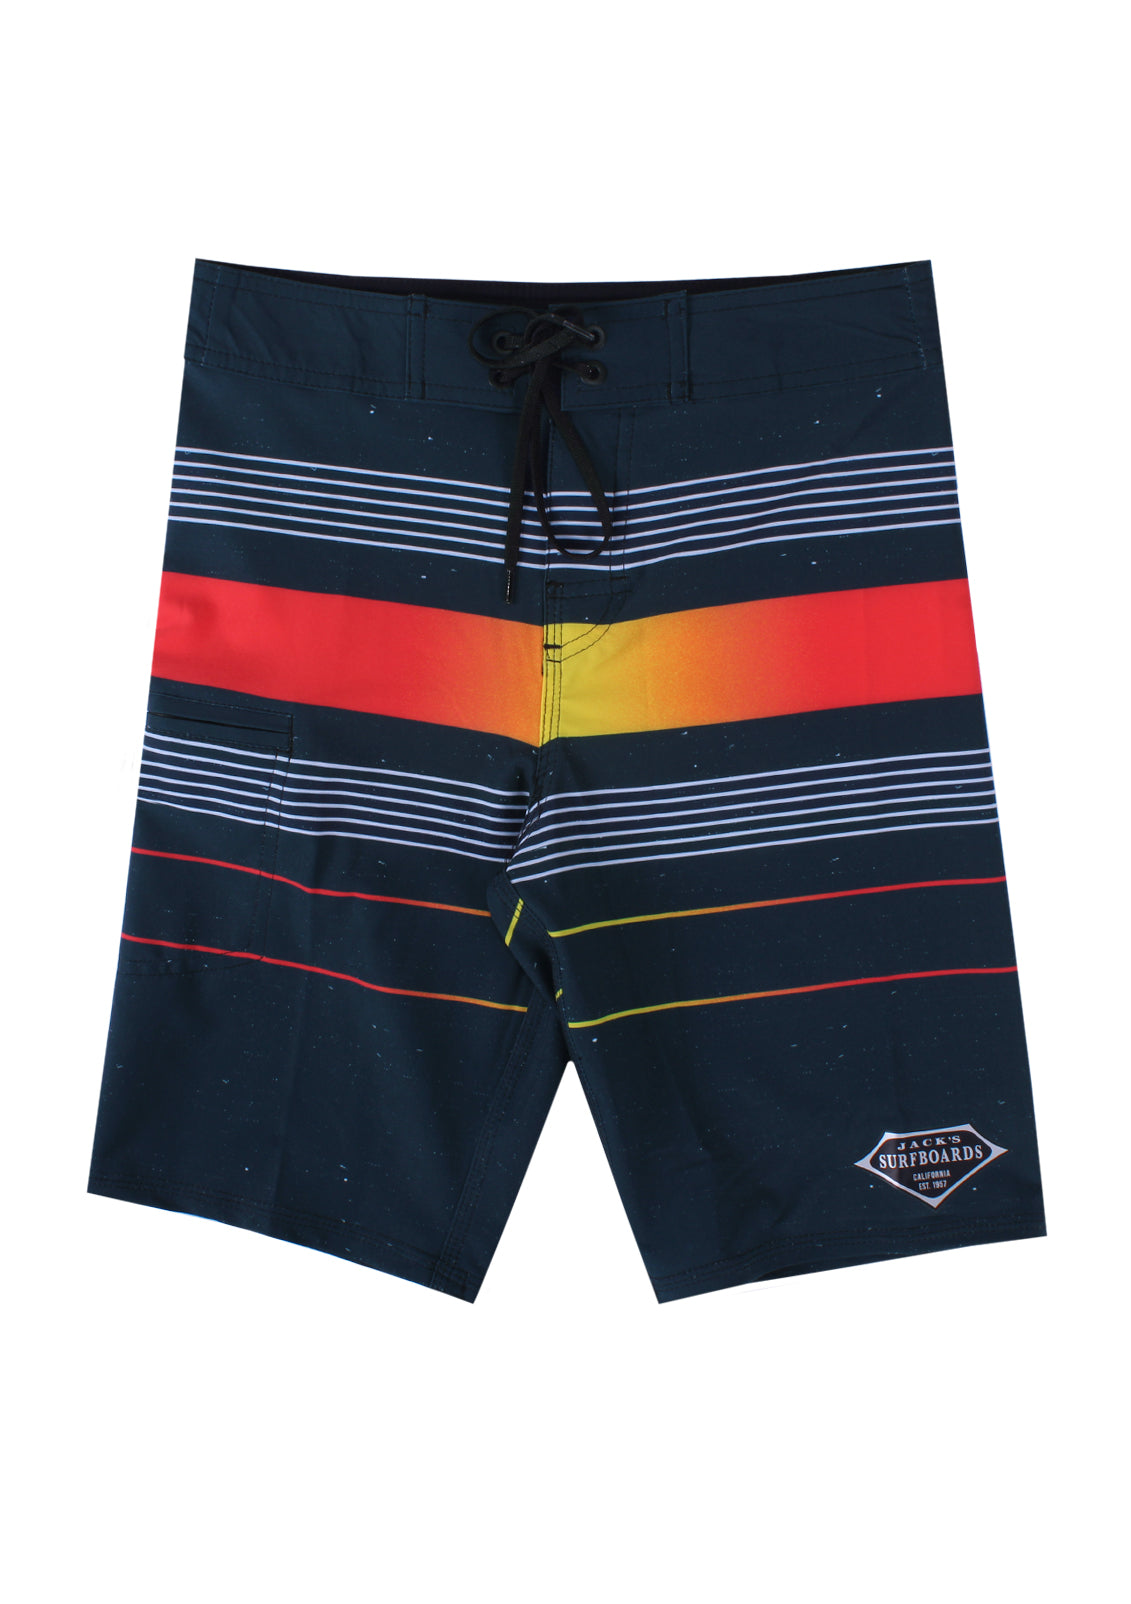 Jacks Surfboard Boys Depart Boardshort